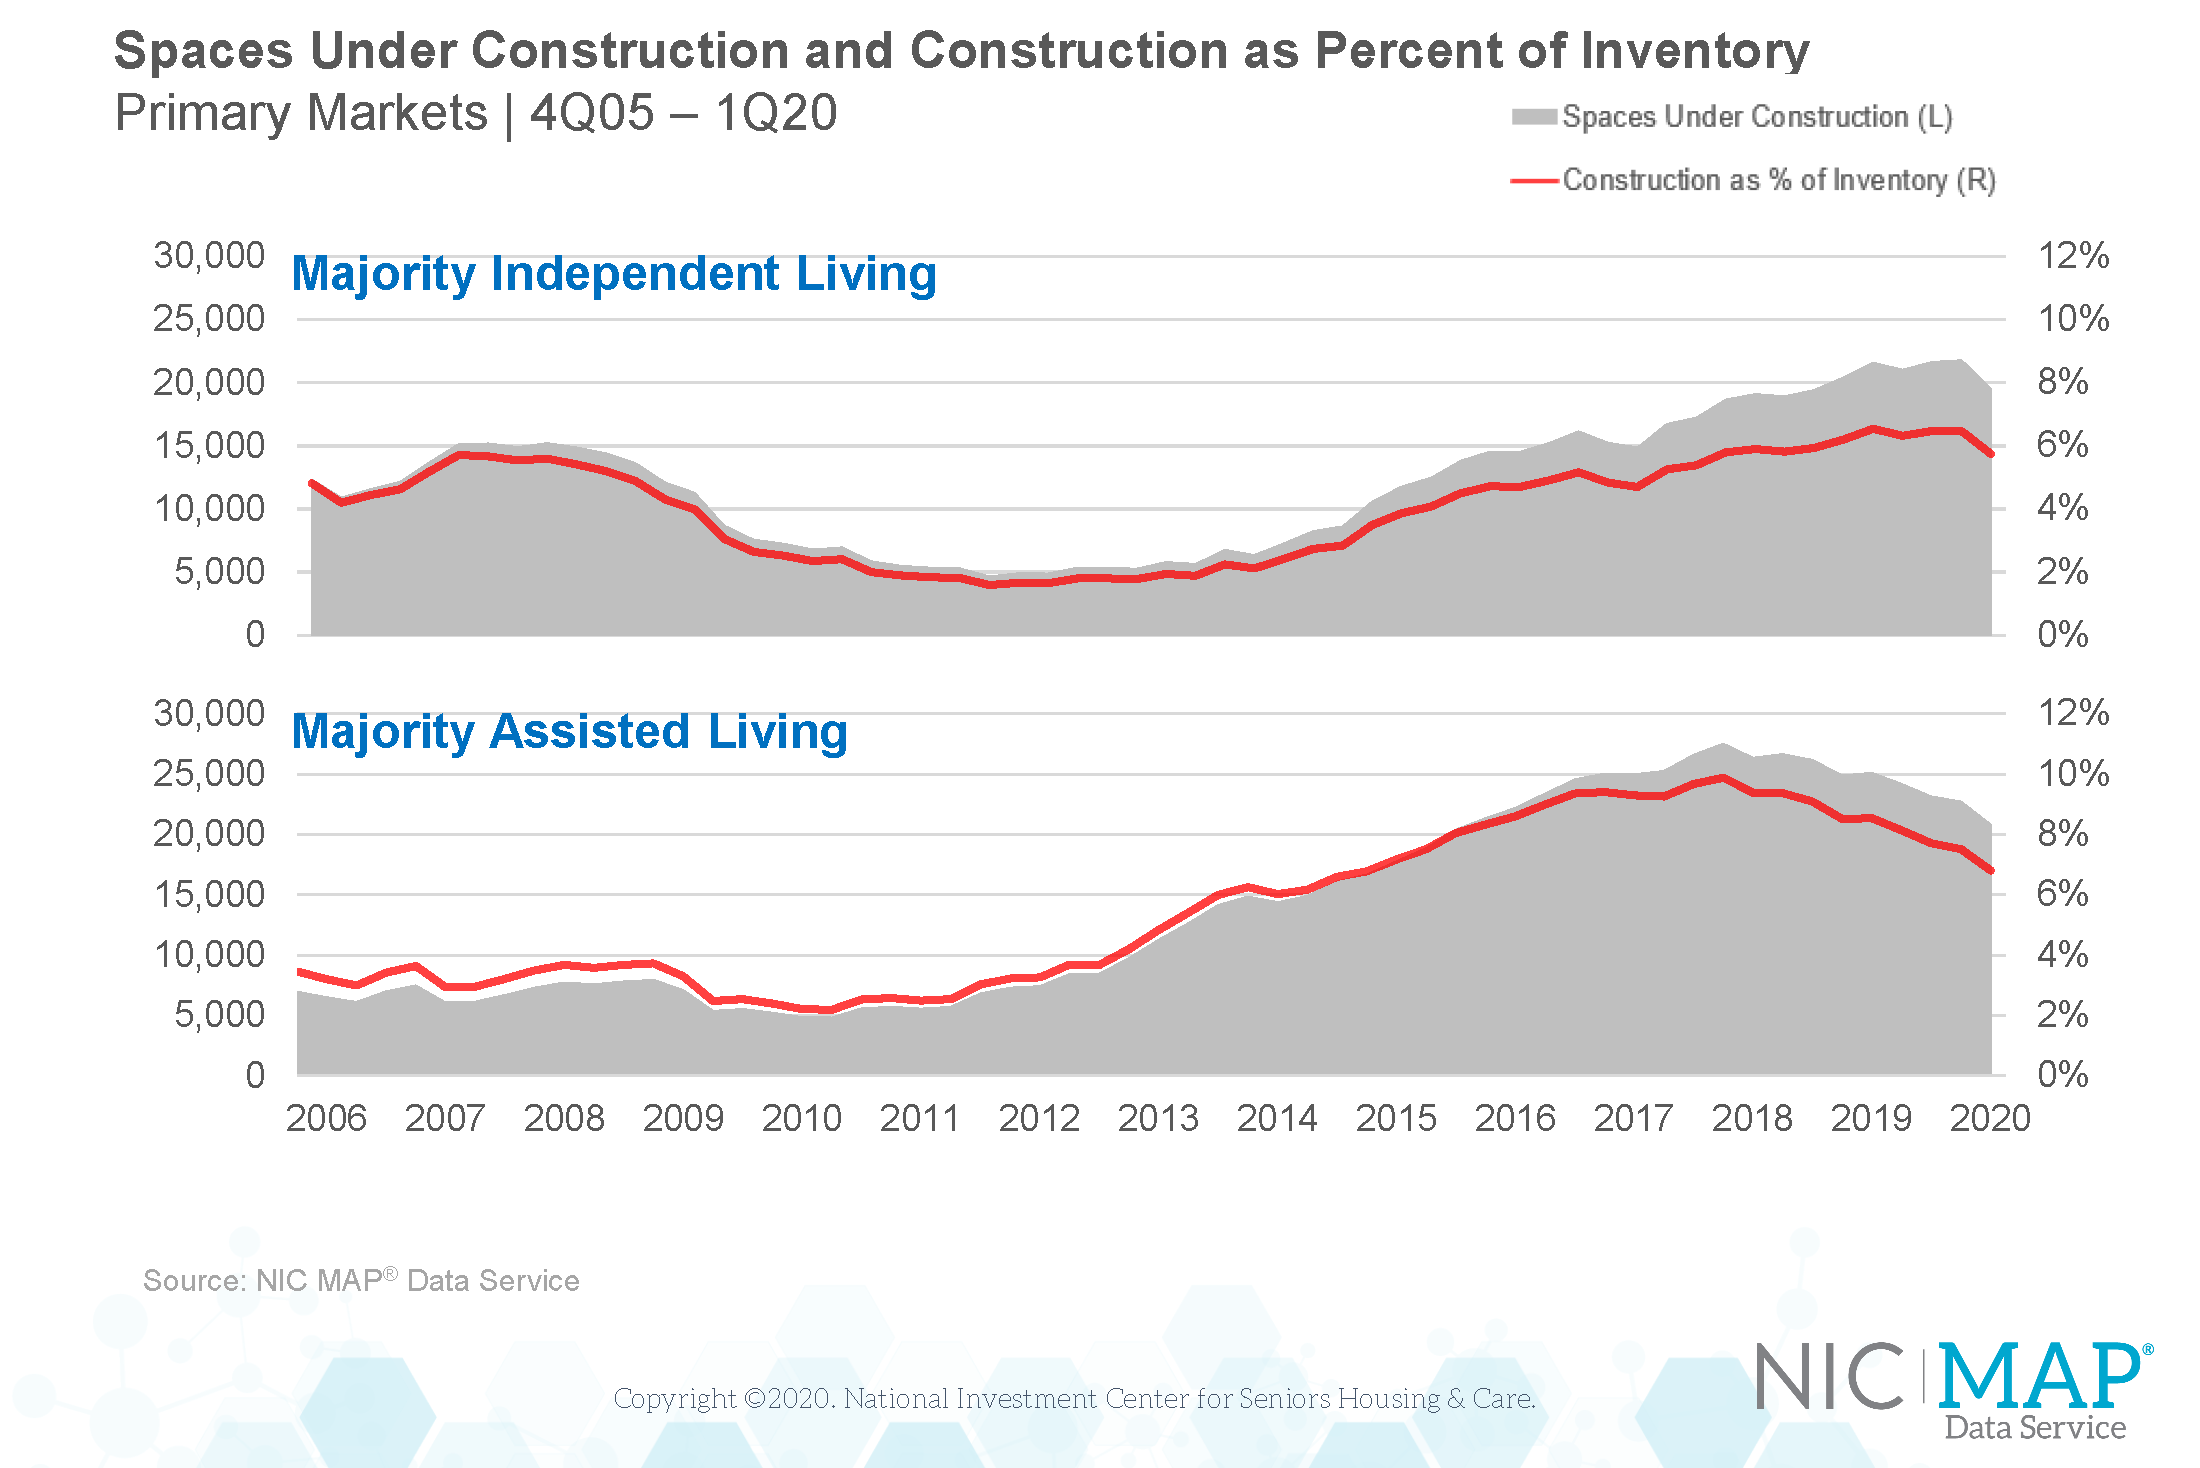 NIC_MAP_Data_Service_Spaces_Under_Construction_and_Construction_as_Percent_of_Inventory_1Q20_